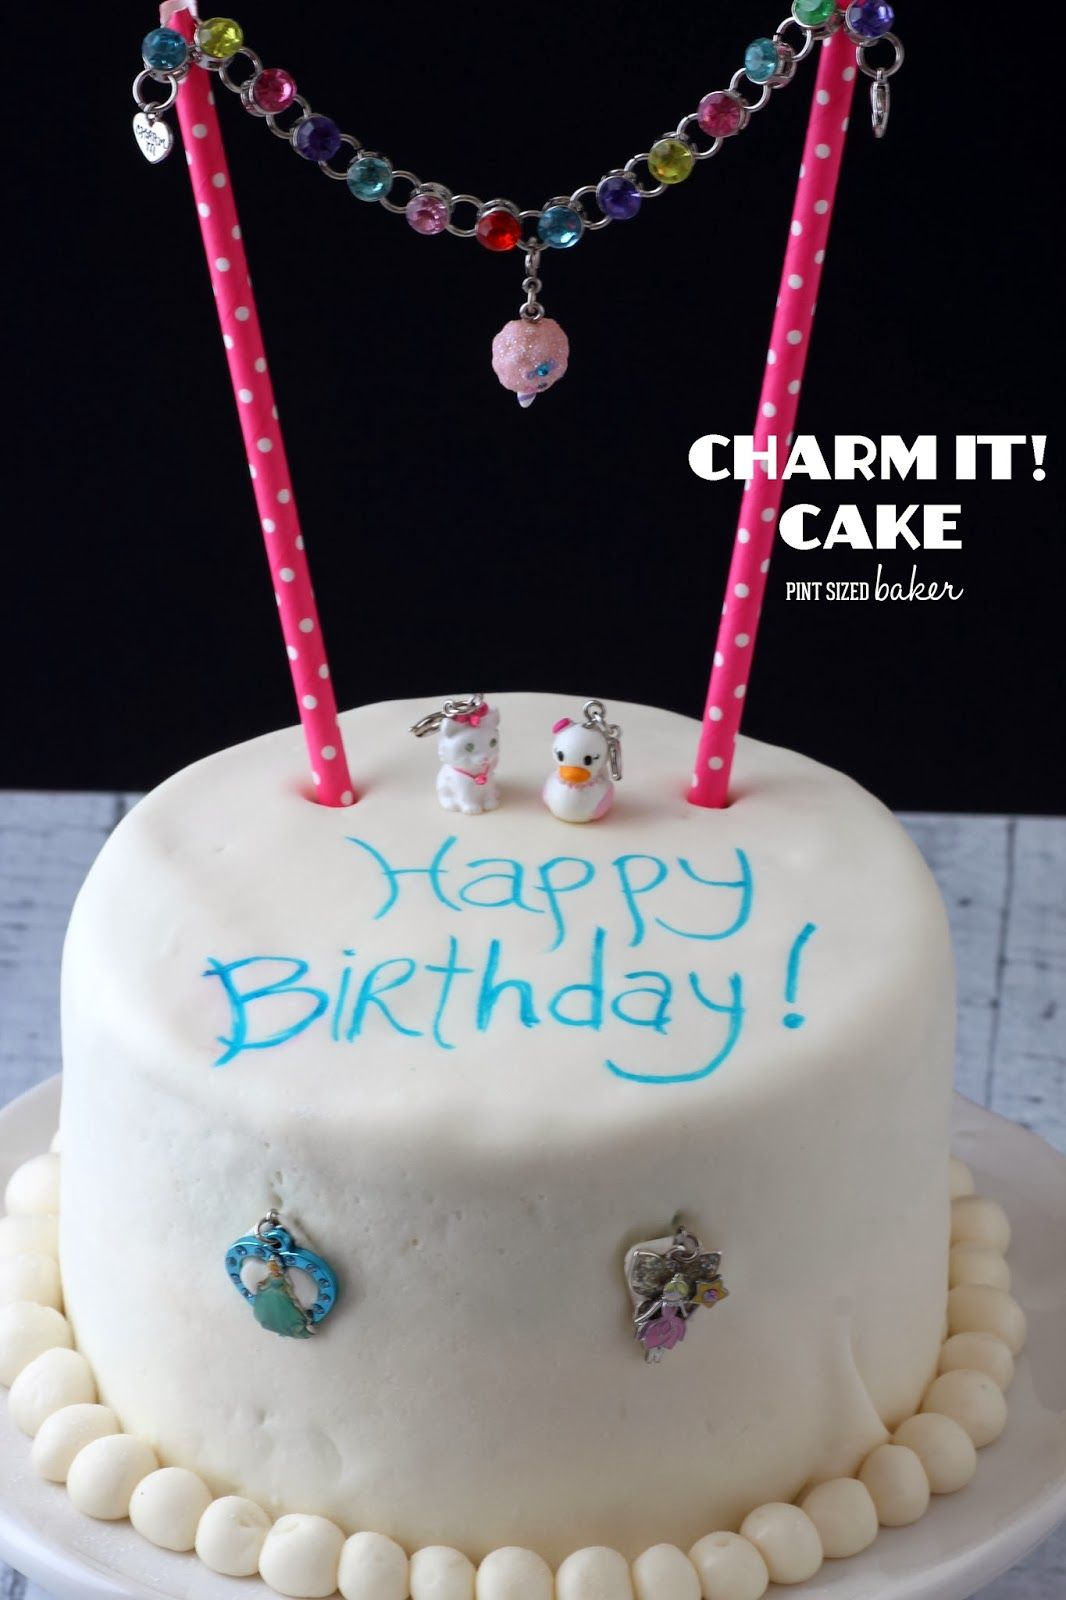 Its A Charmed Birthday Cake An Easy Birthday Cake Adorned With A